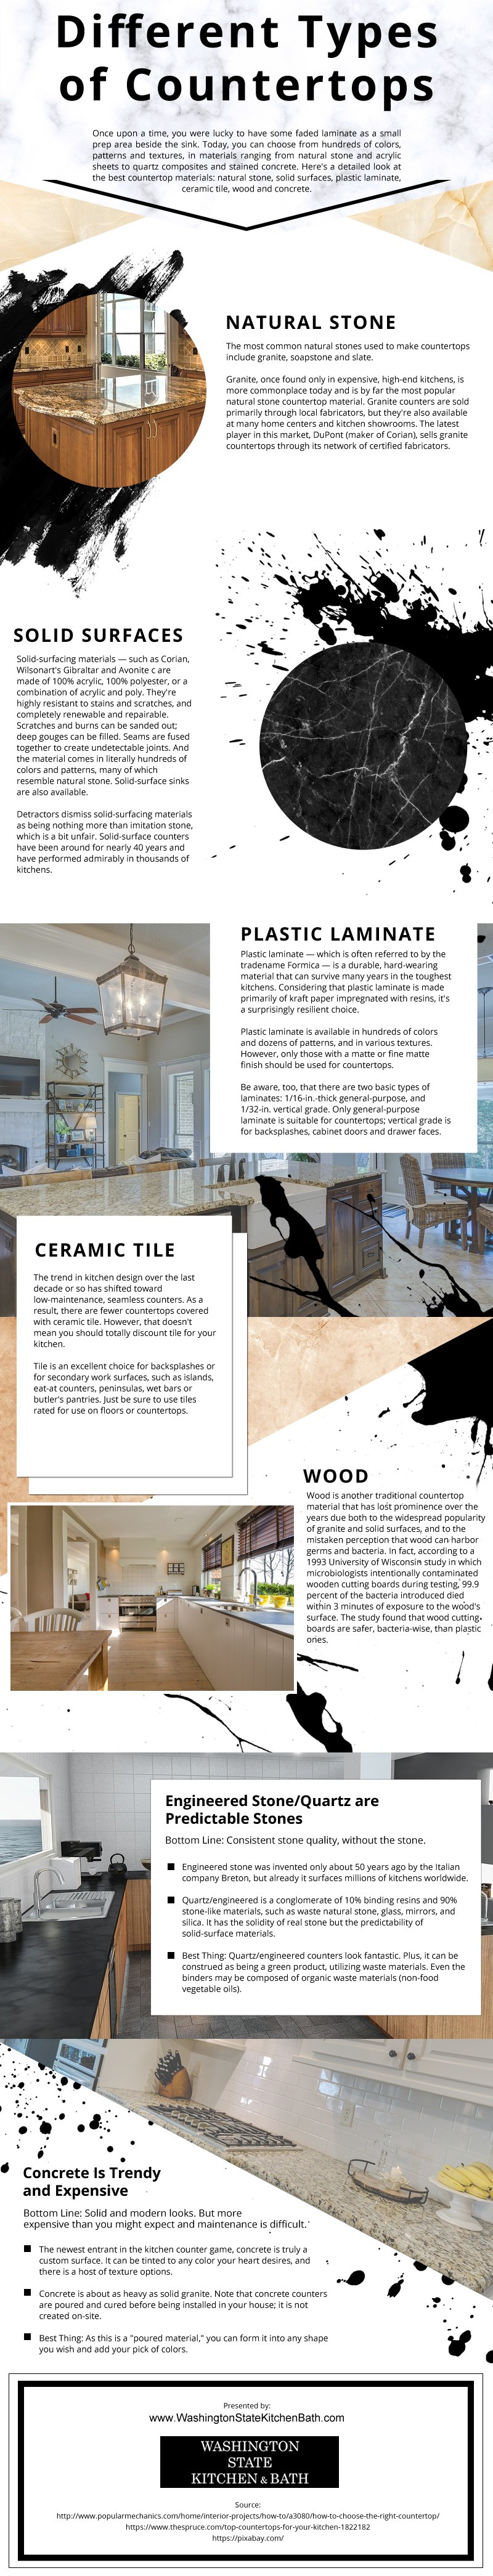 Different-Types-of-Countertops Infographic